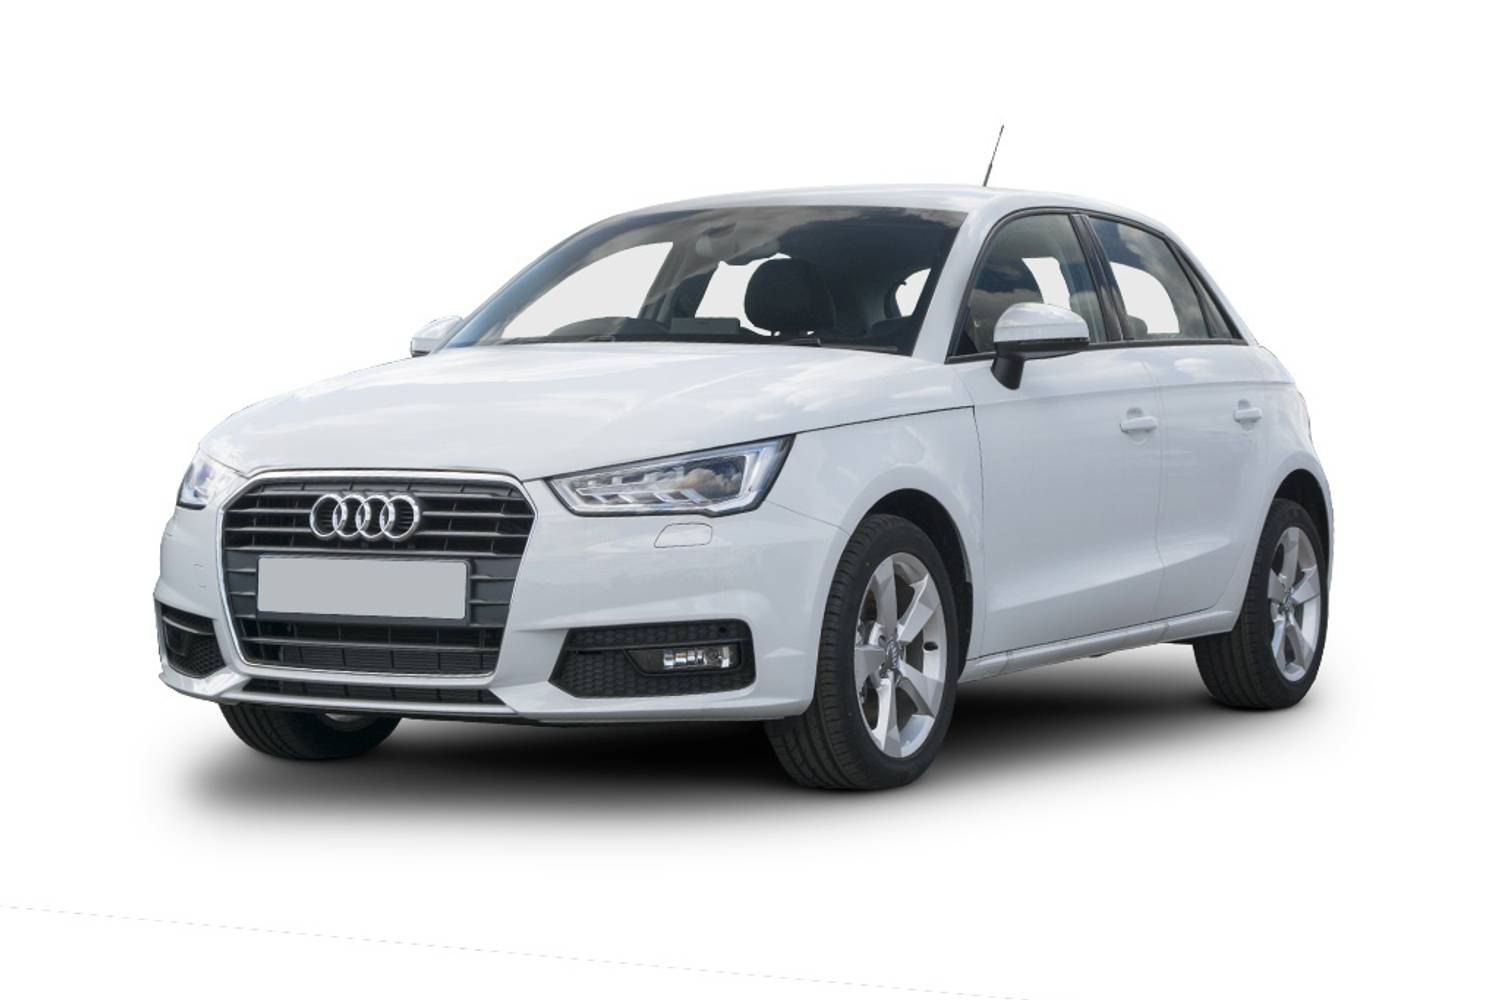 Le Meilleur New Audi A1 Sportback 1 Tfsi Se 5 Door 2015 For Sale Ce Mois Ci